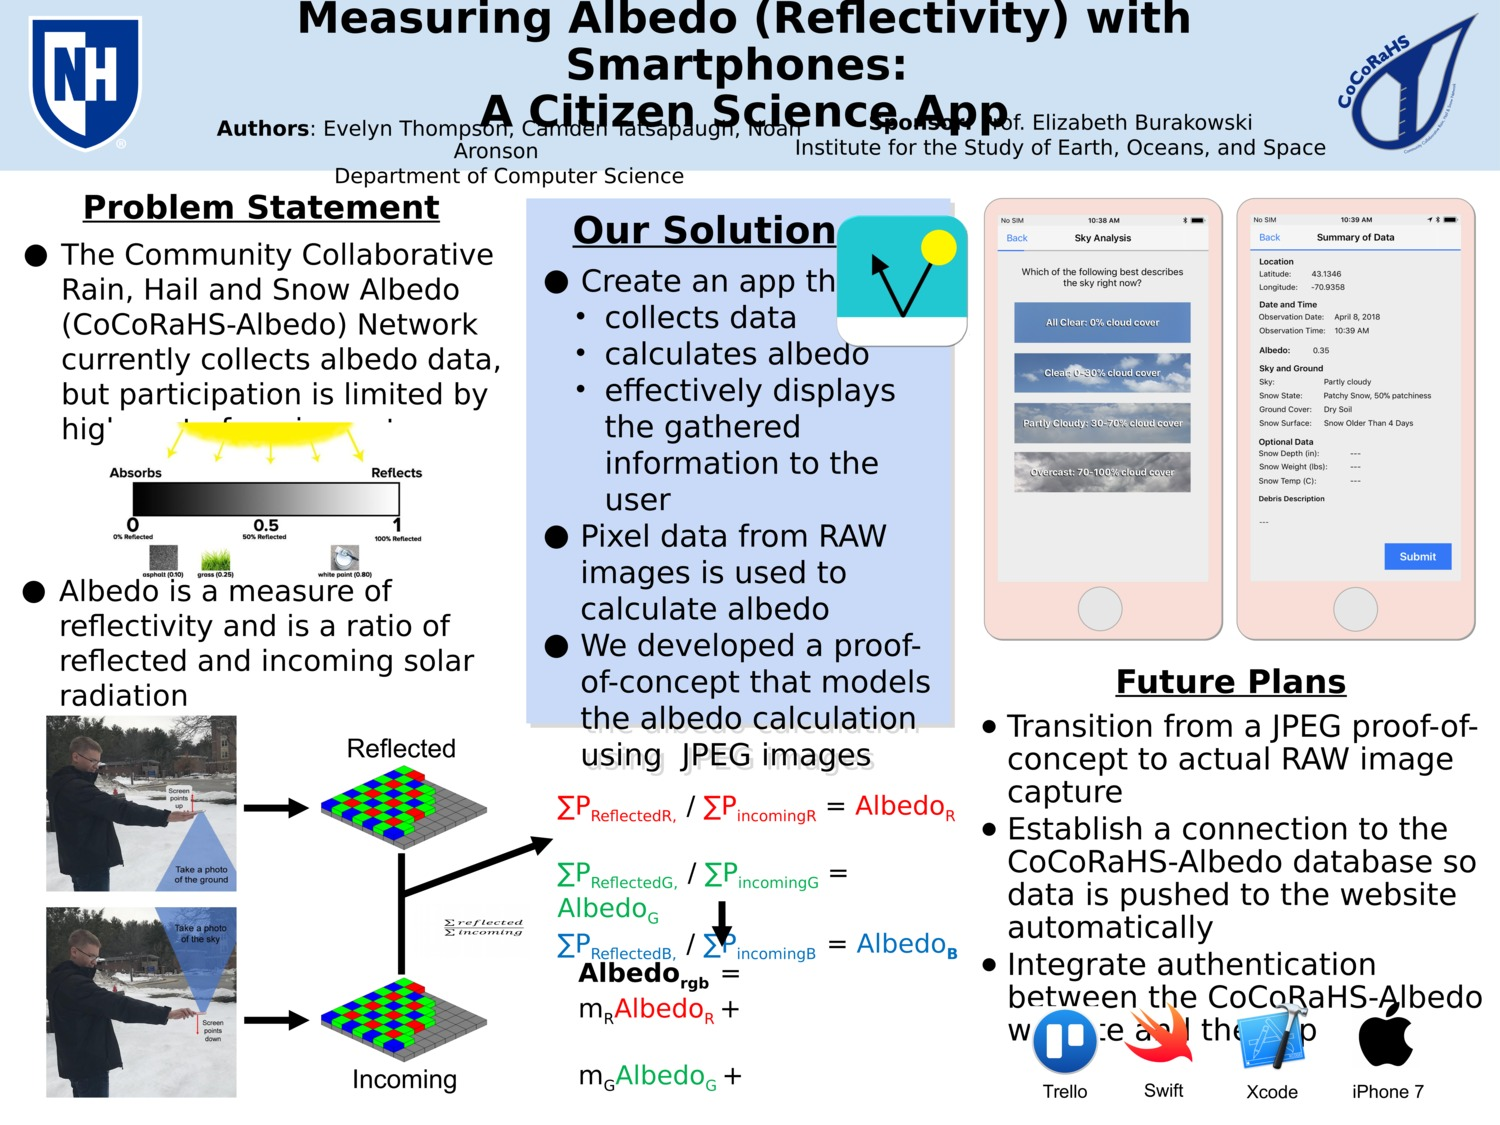 Measuring Albedo (Reflectivity) With Smartphones: A Citizen Science App by crt2004